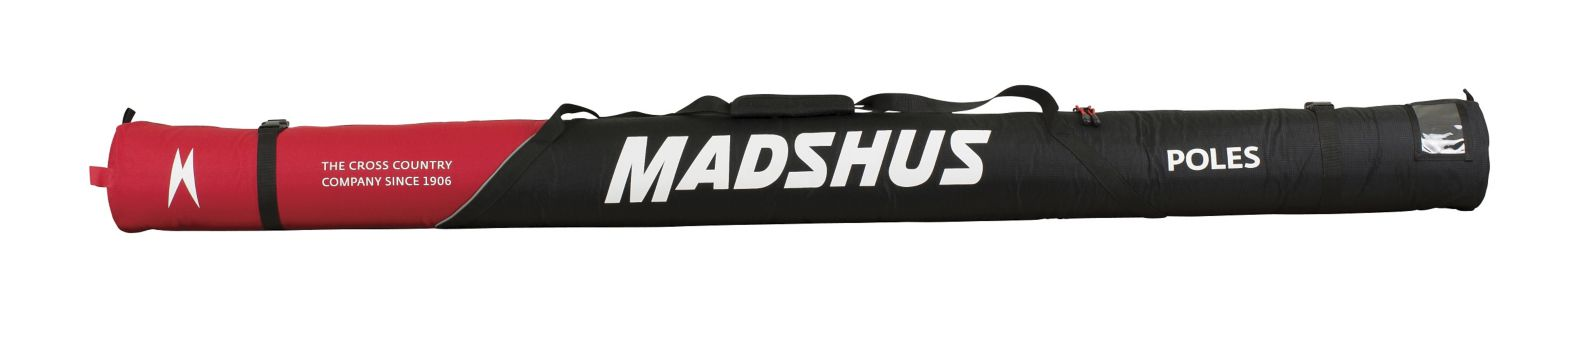 Madshus Pole Bag - Hard Case Accessory